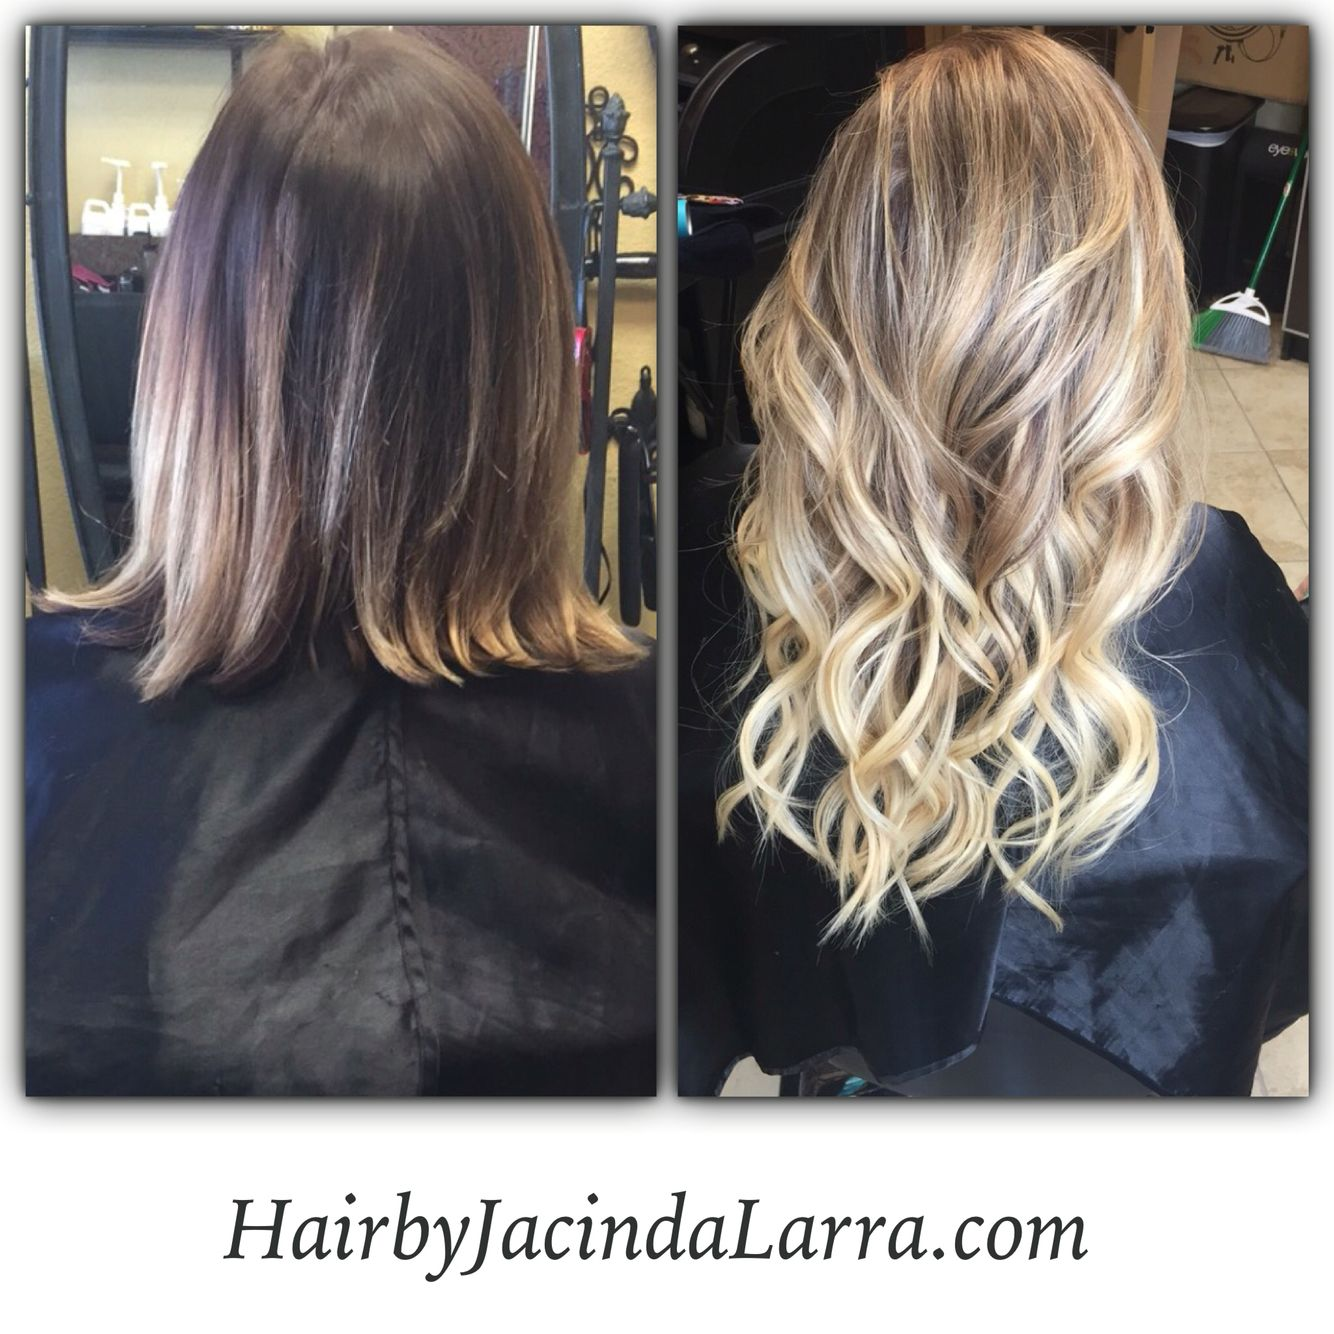 Dream Catcher Extensions Best Before And After Dreamcatchers Extensions  Hairbyjacindalarra 2018